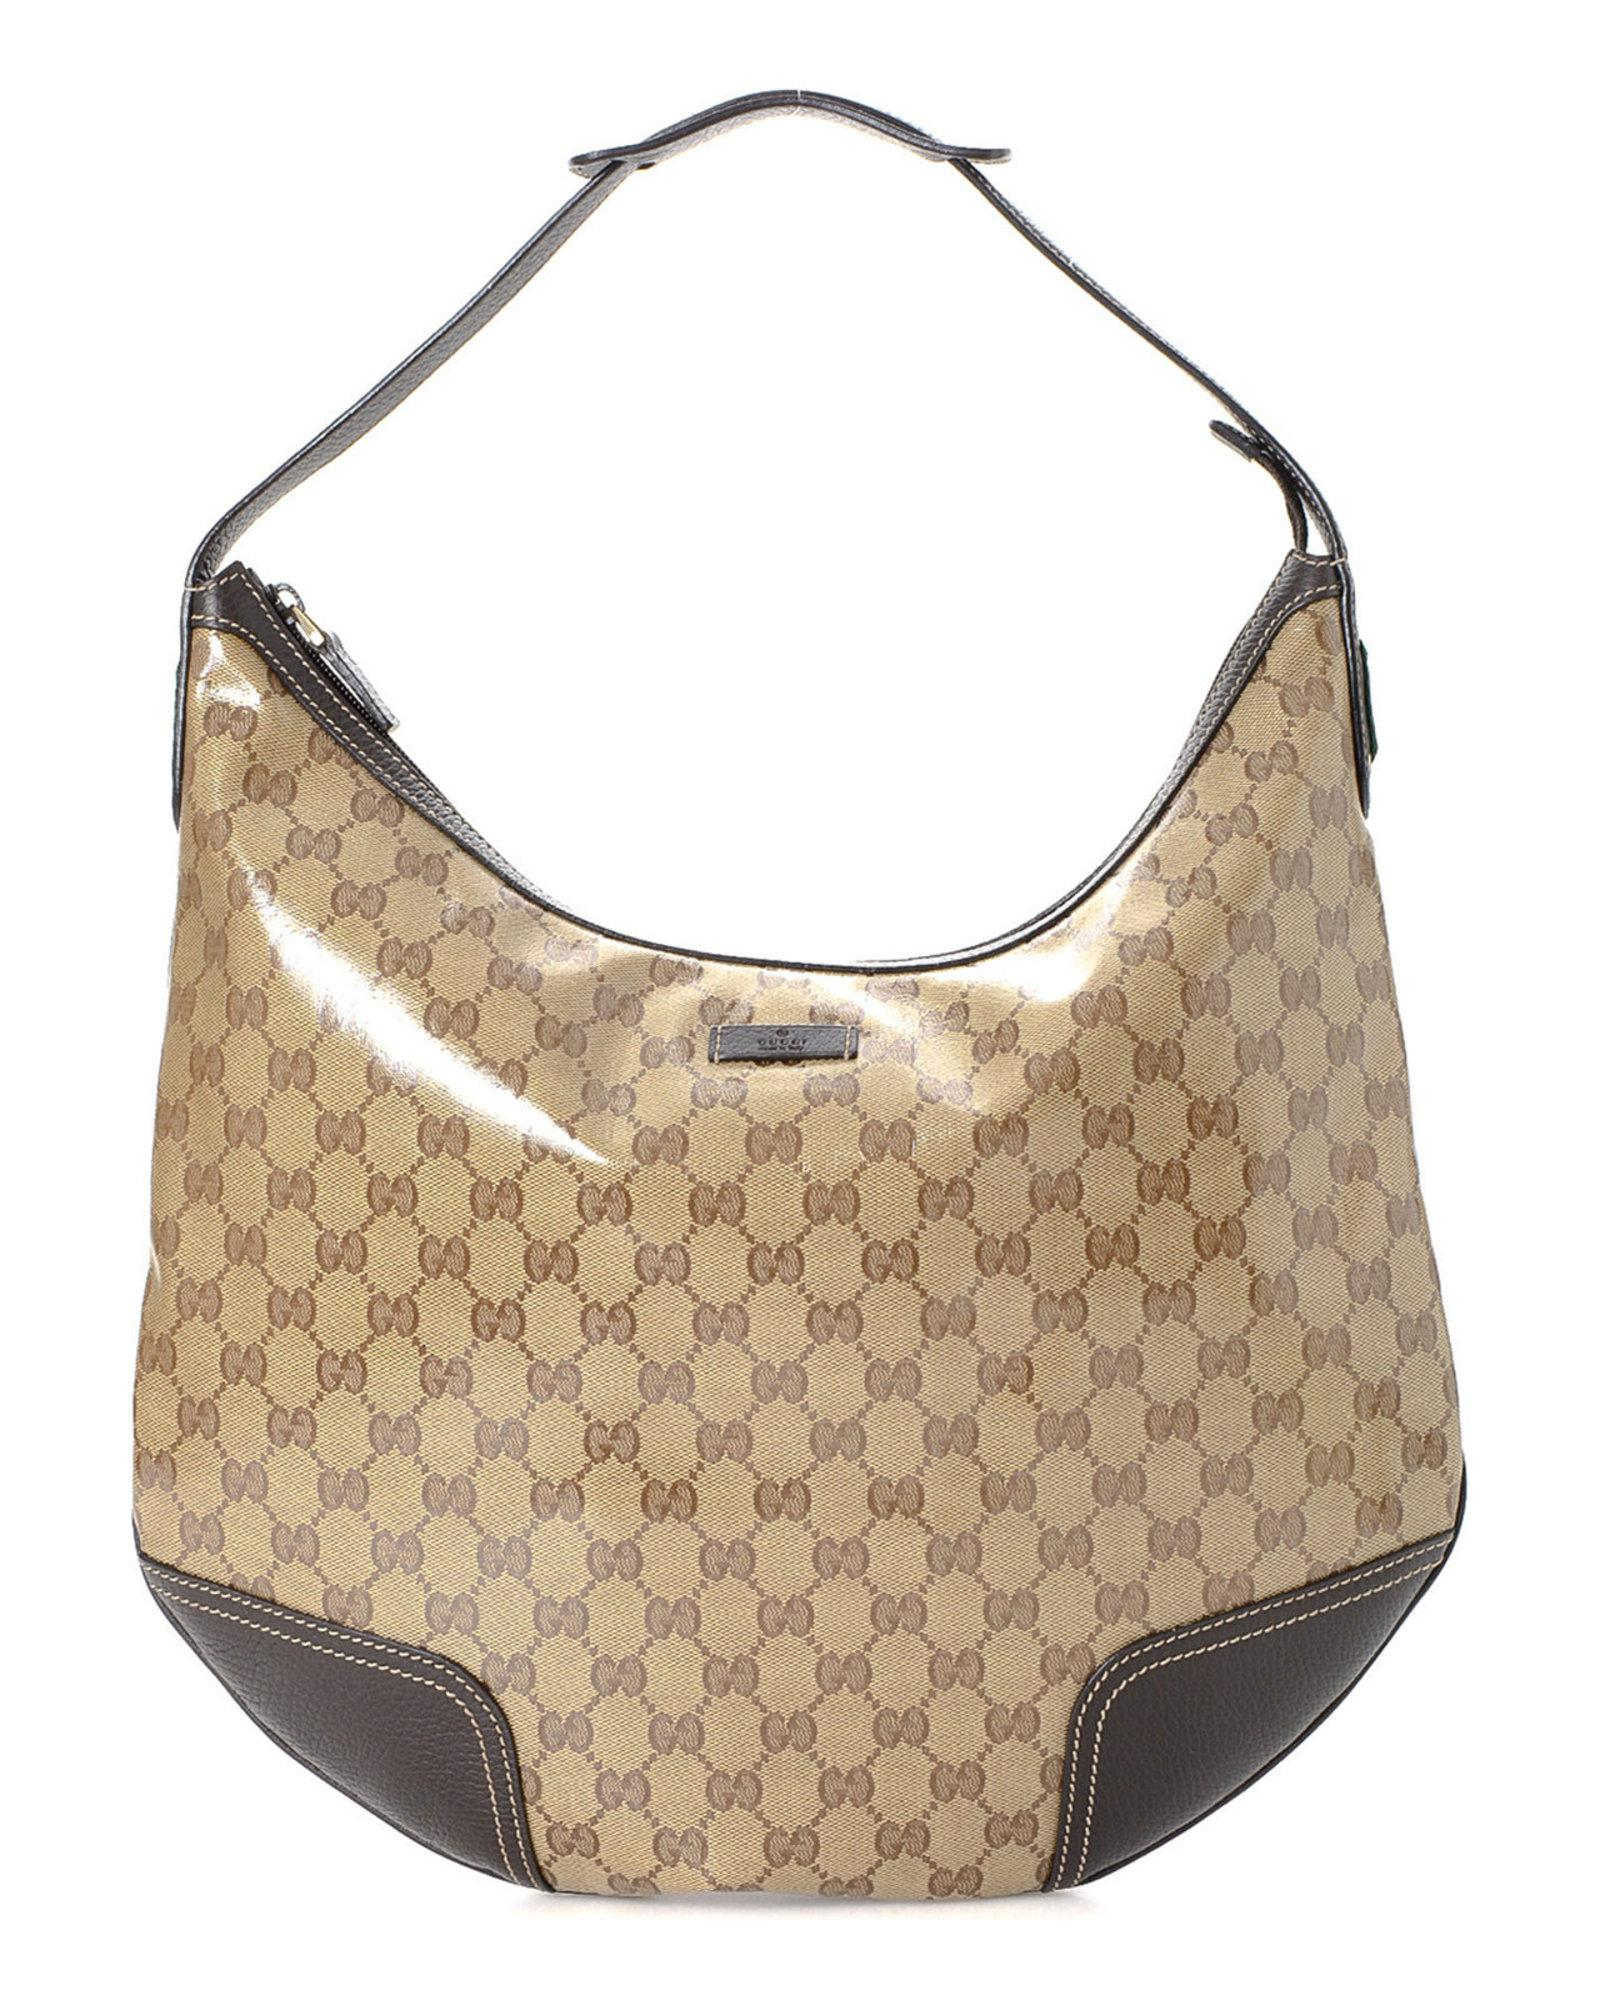 9dddcf313e9f Lyst - Gucci Gg Crystal Tote - Vintage in Natural